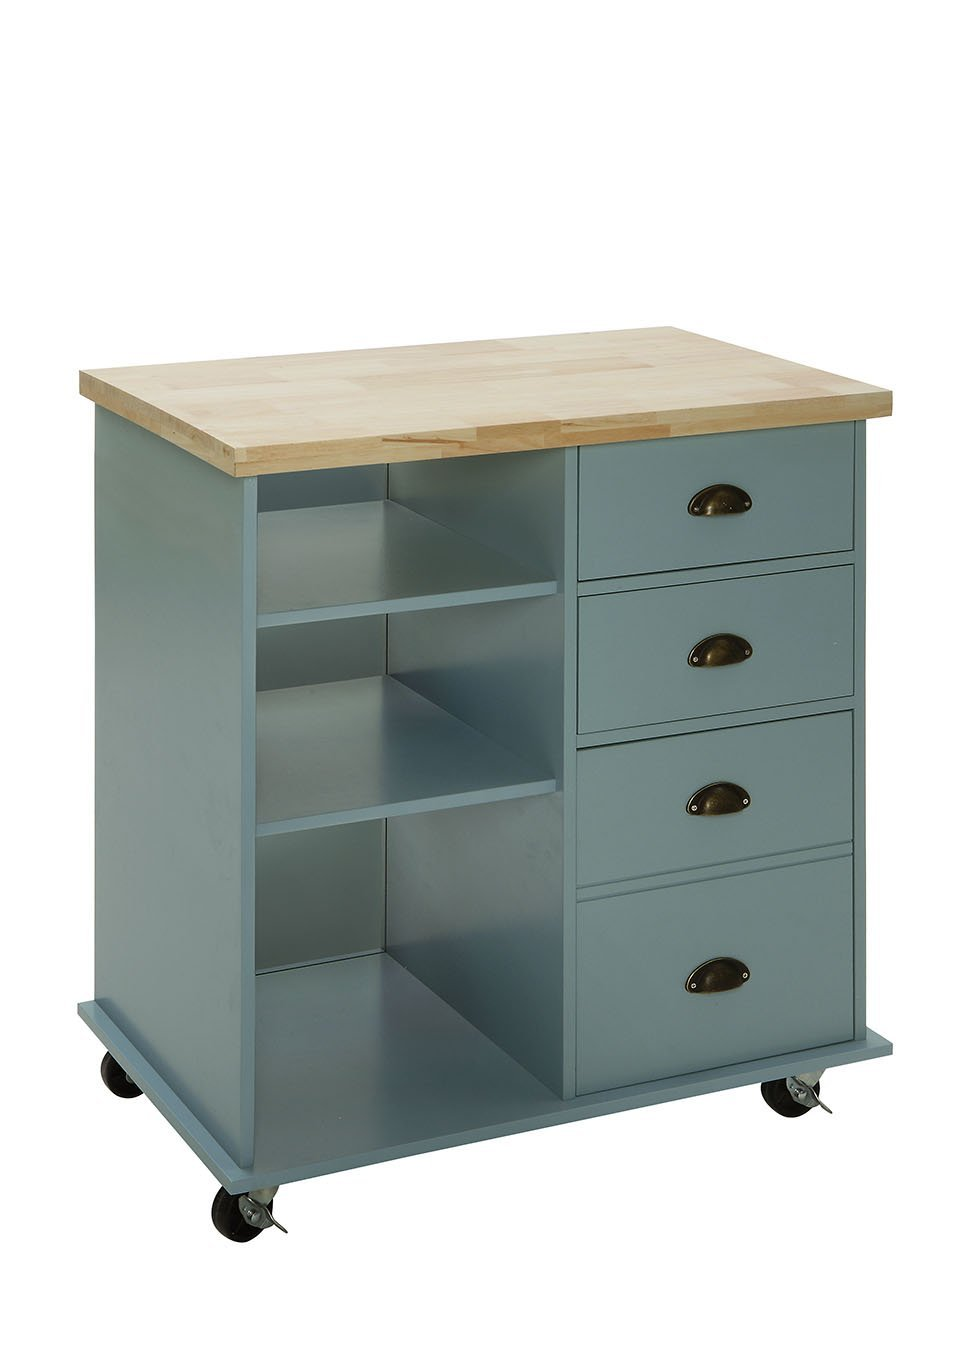 "Oliver and Smith - Nashville Collection - Mobile Kitchen Island Cart on Wheels - Blue Grey - Natural Oak Butcher Block - 31"" W x 18"" L x 36"" H"